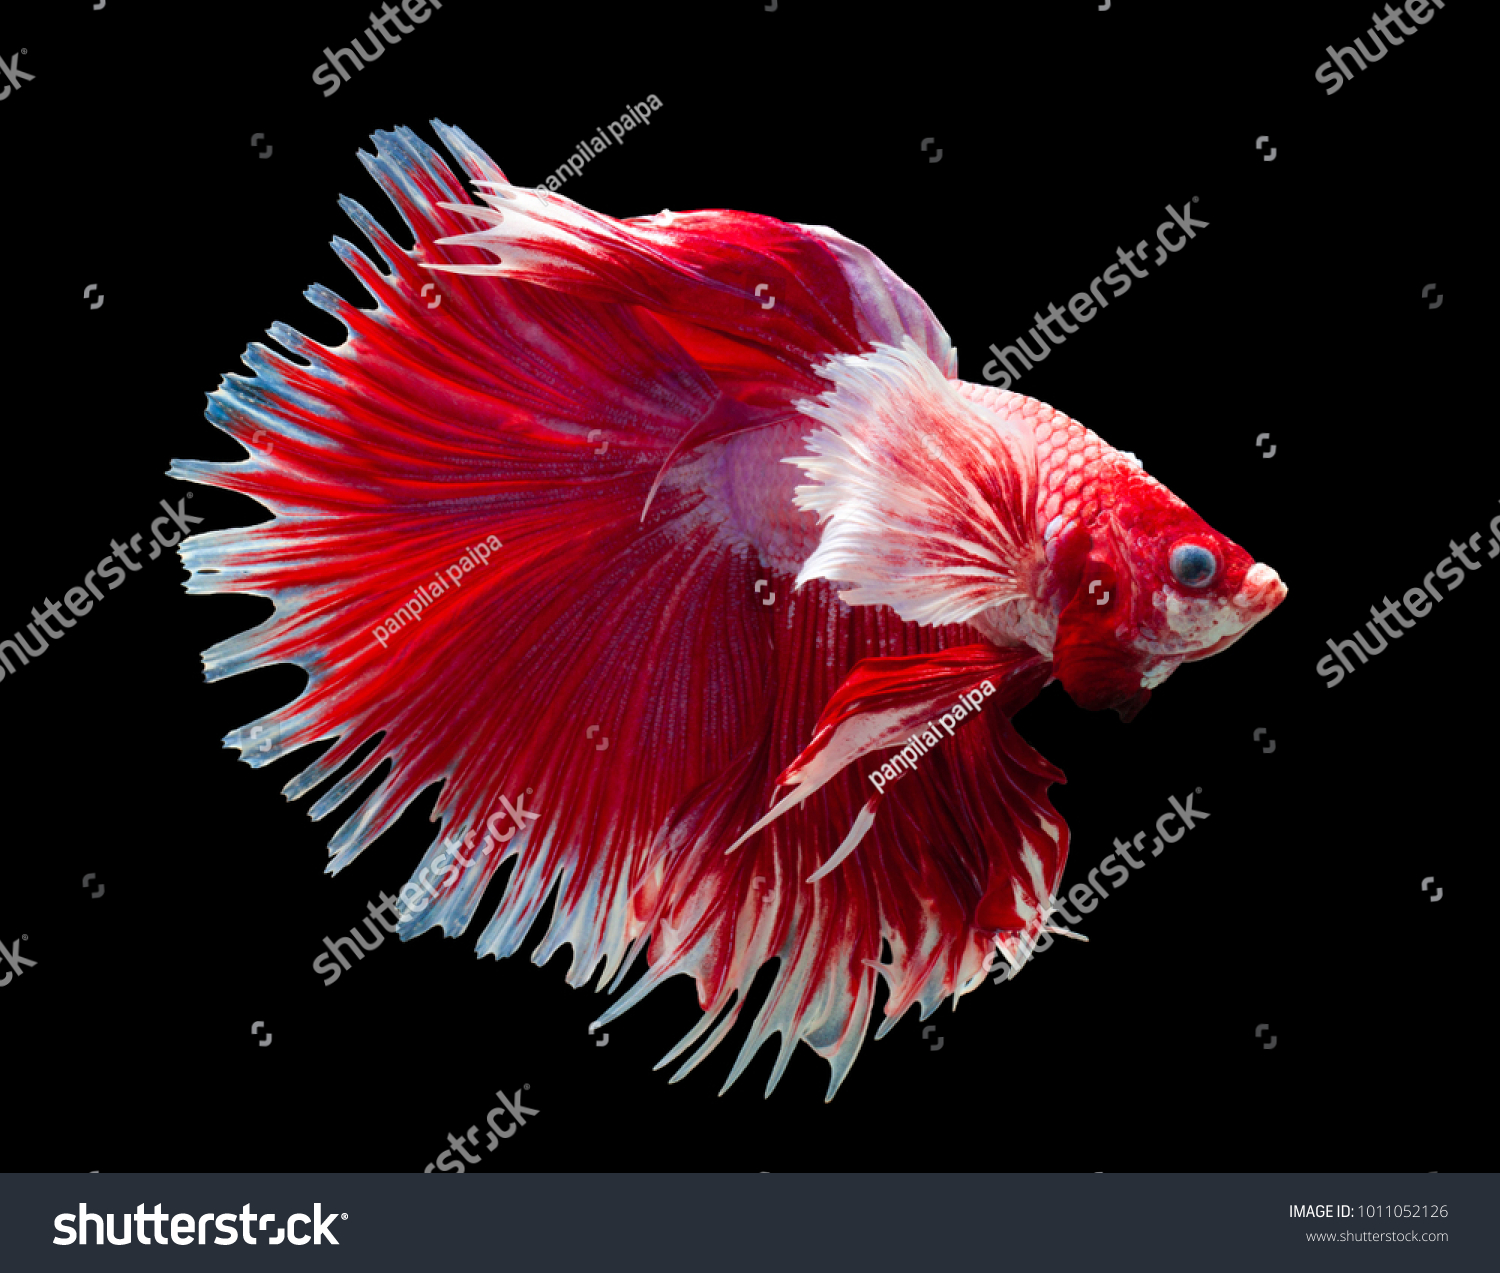 capture the moving moment beautiful of siam betta fish in thailand ...